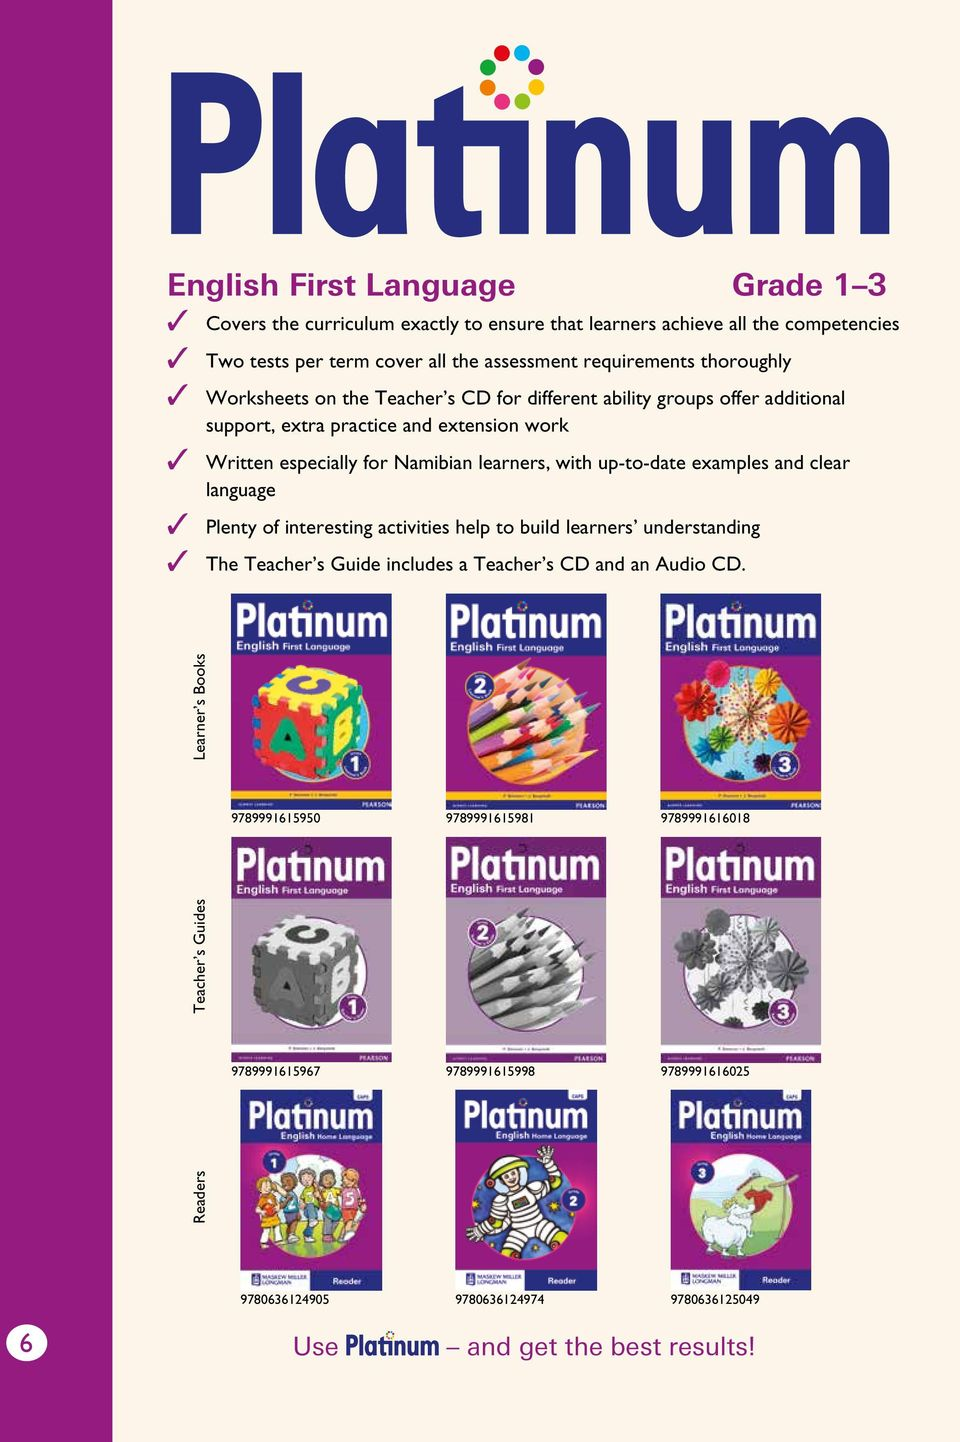 with up-to-date examples and clear language Plenty of interesting  activities help to. 8 The promise Platinum makes learning ...